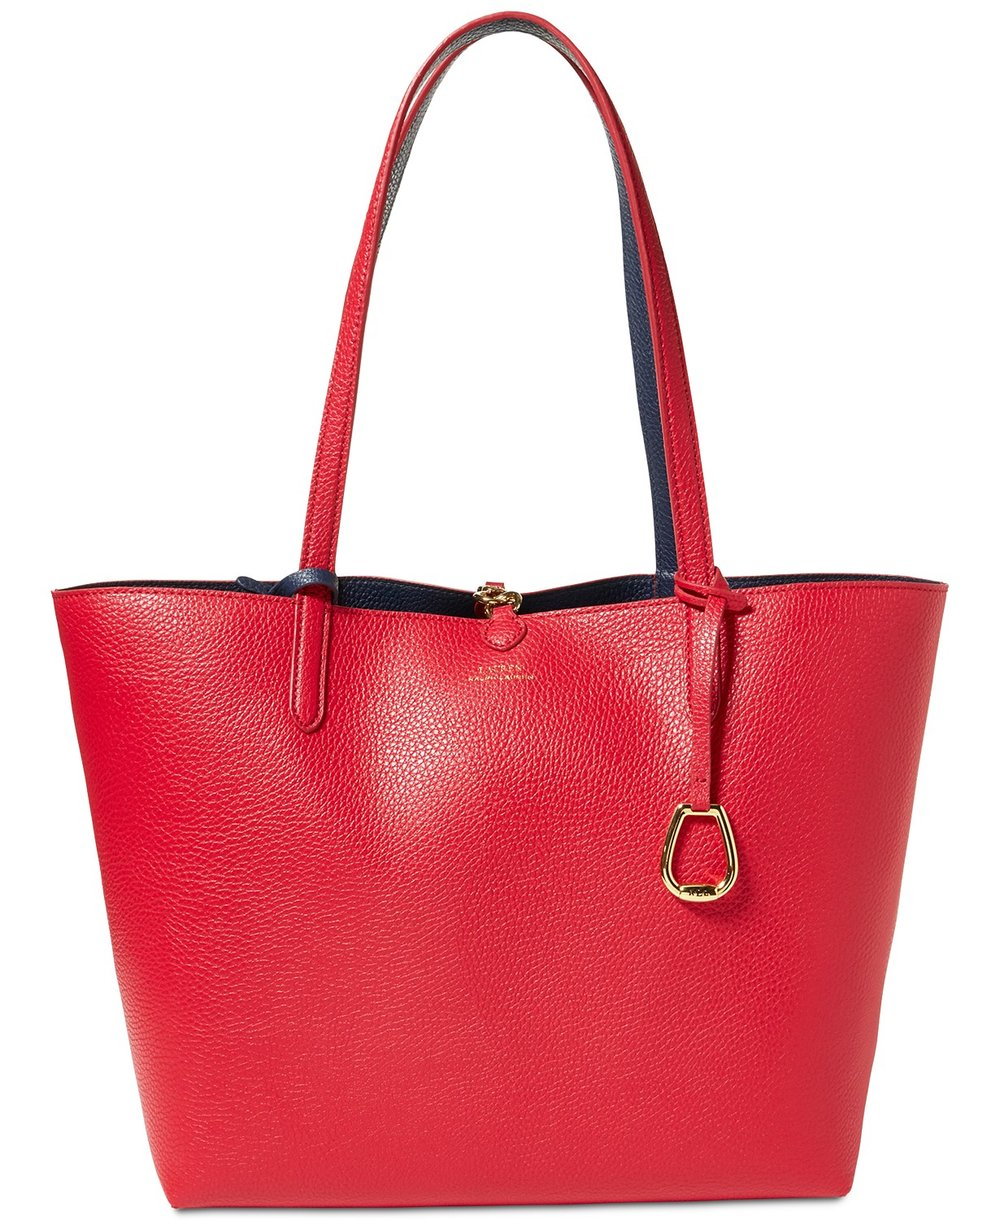 Lauren Ralph Lauren Red Tote Bag.jpg